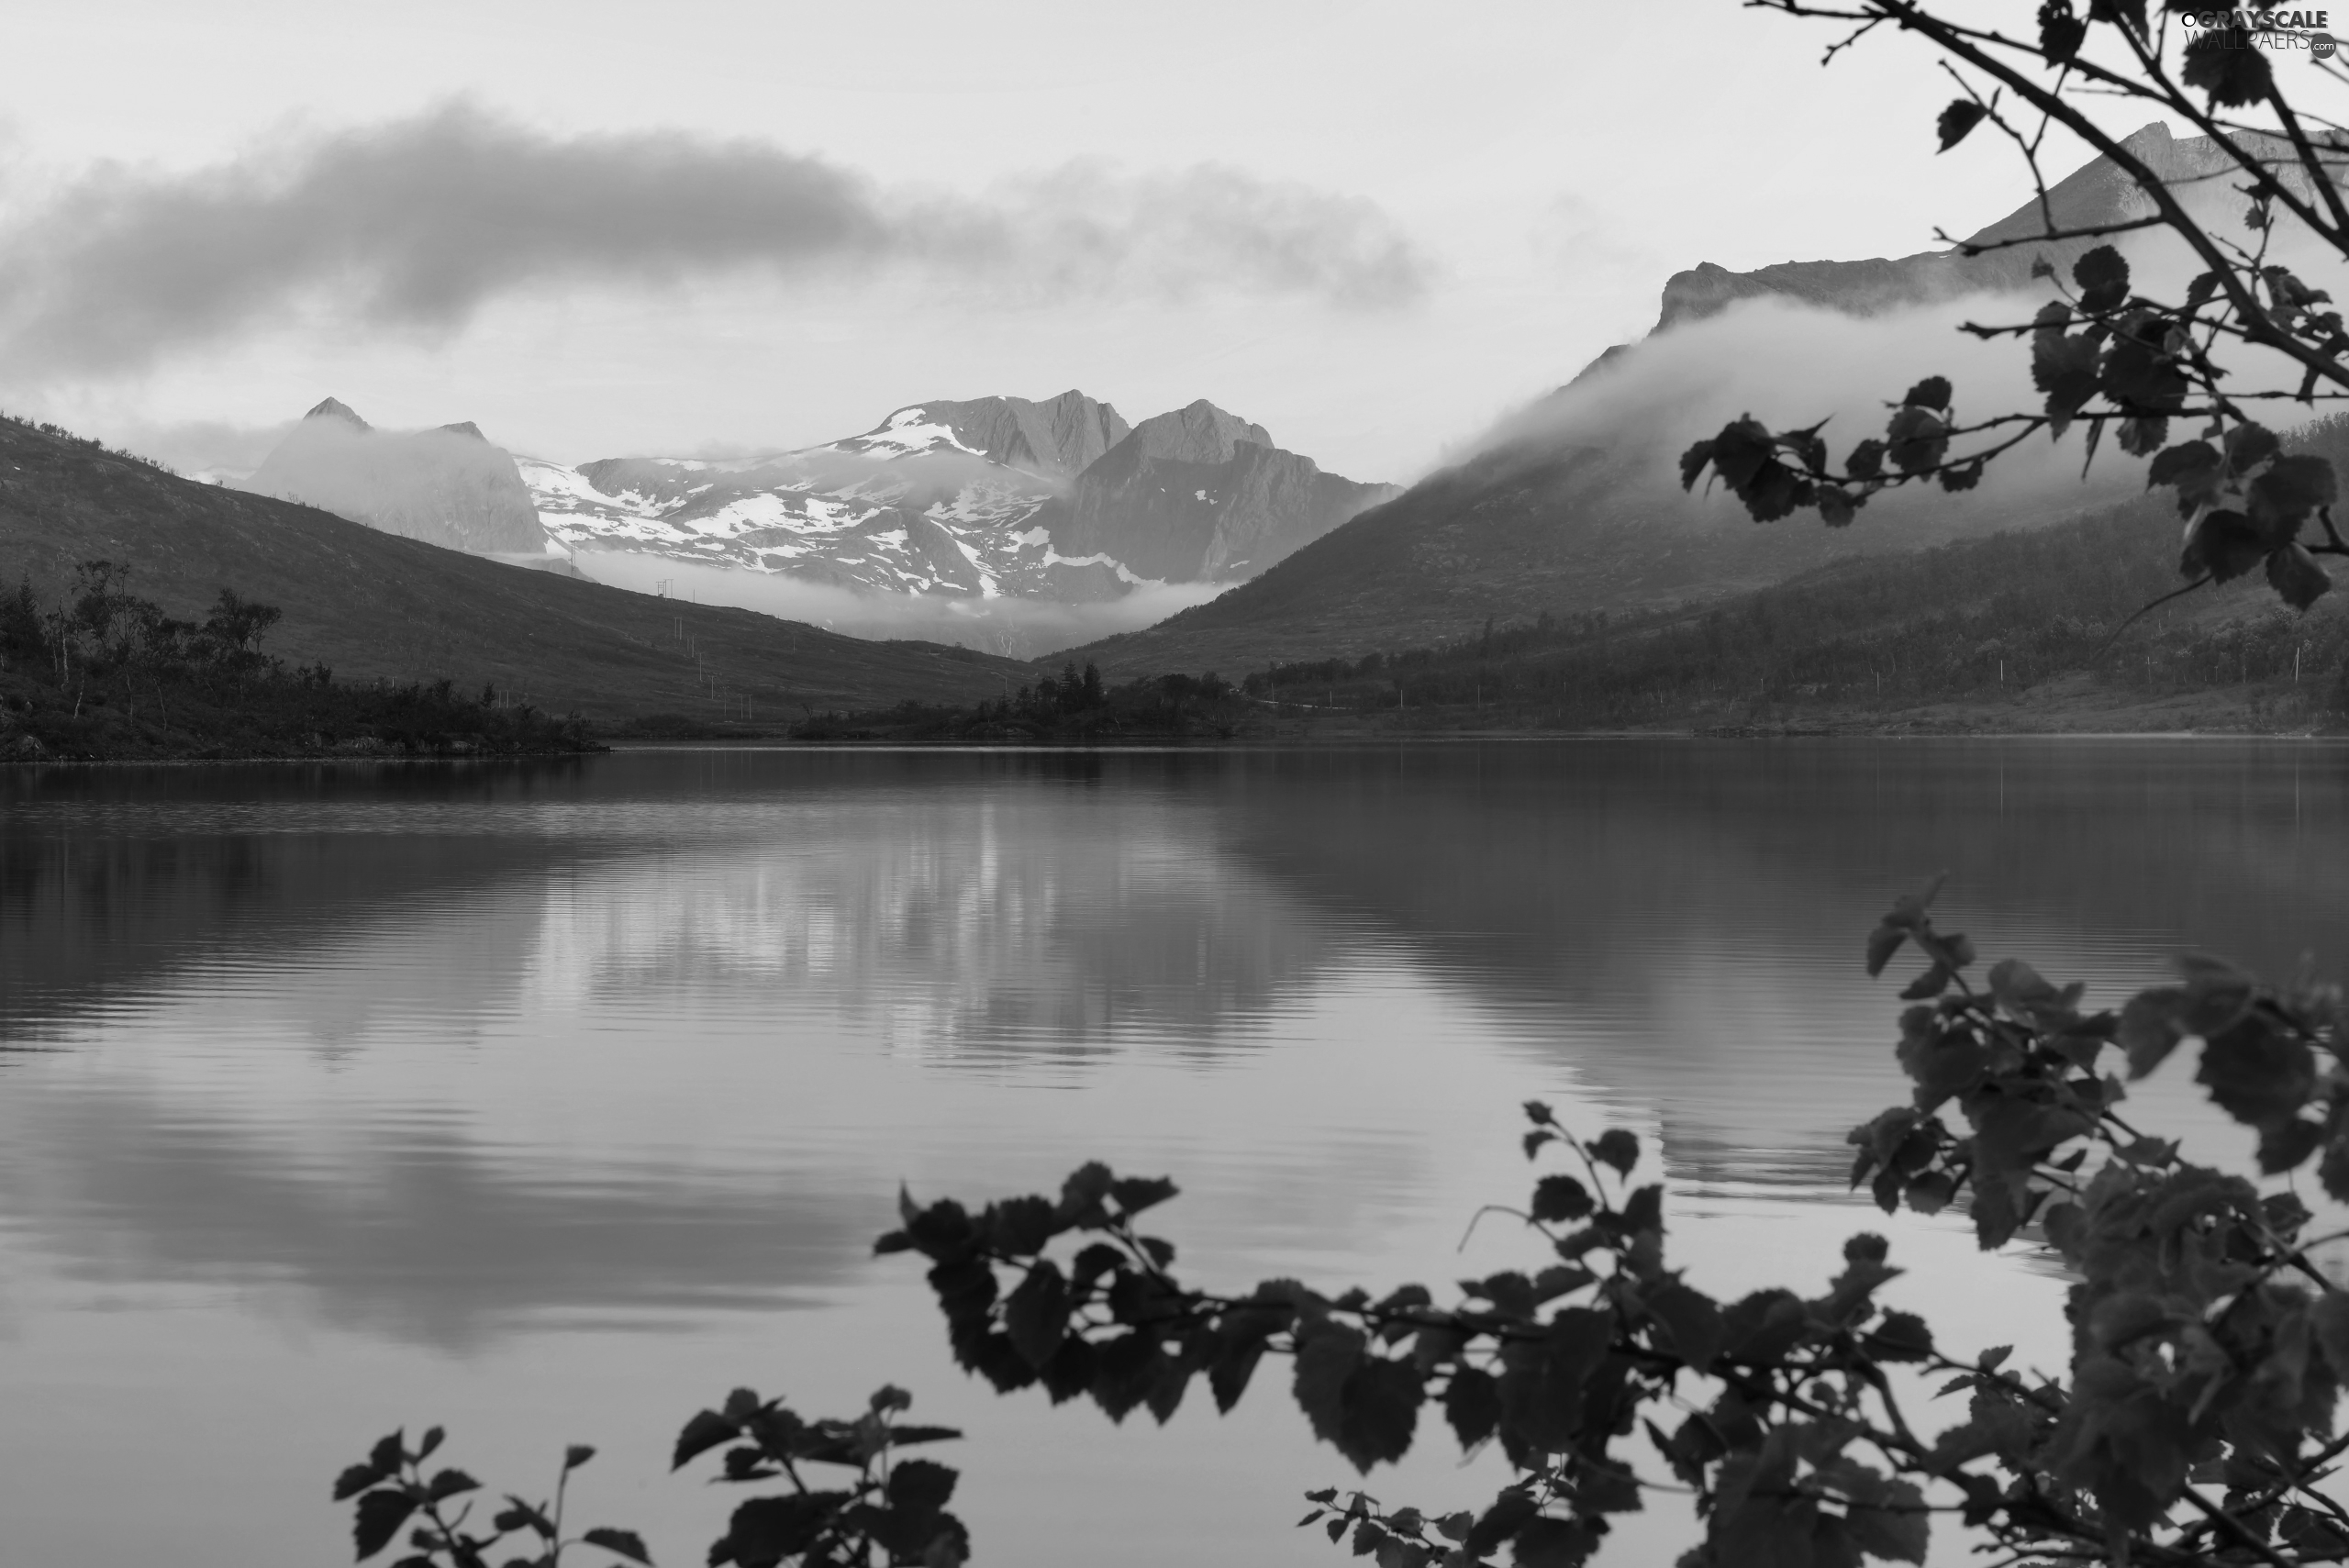 Mountains, lake, trees, viewes, Senja Island, Norway, Fog, reflection, branch pics